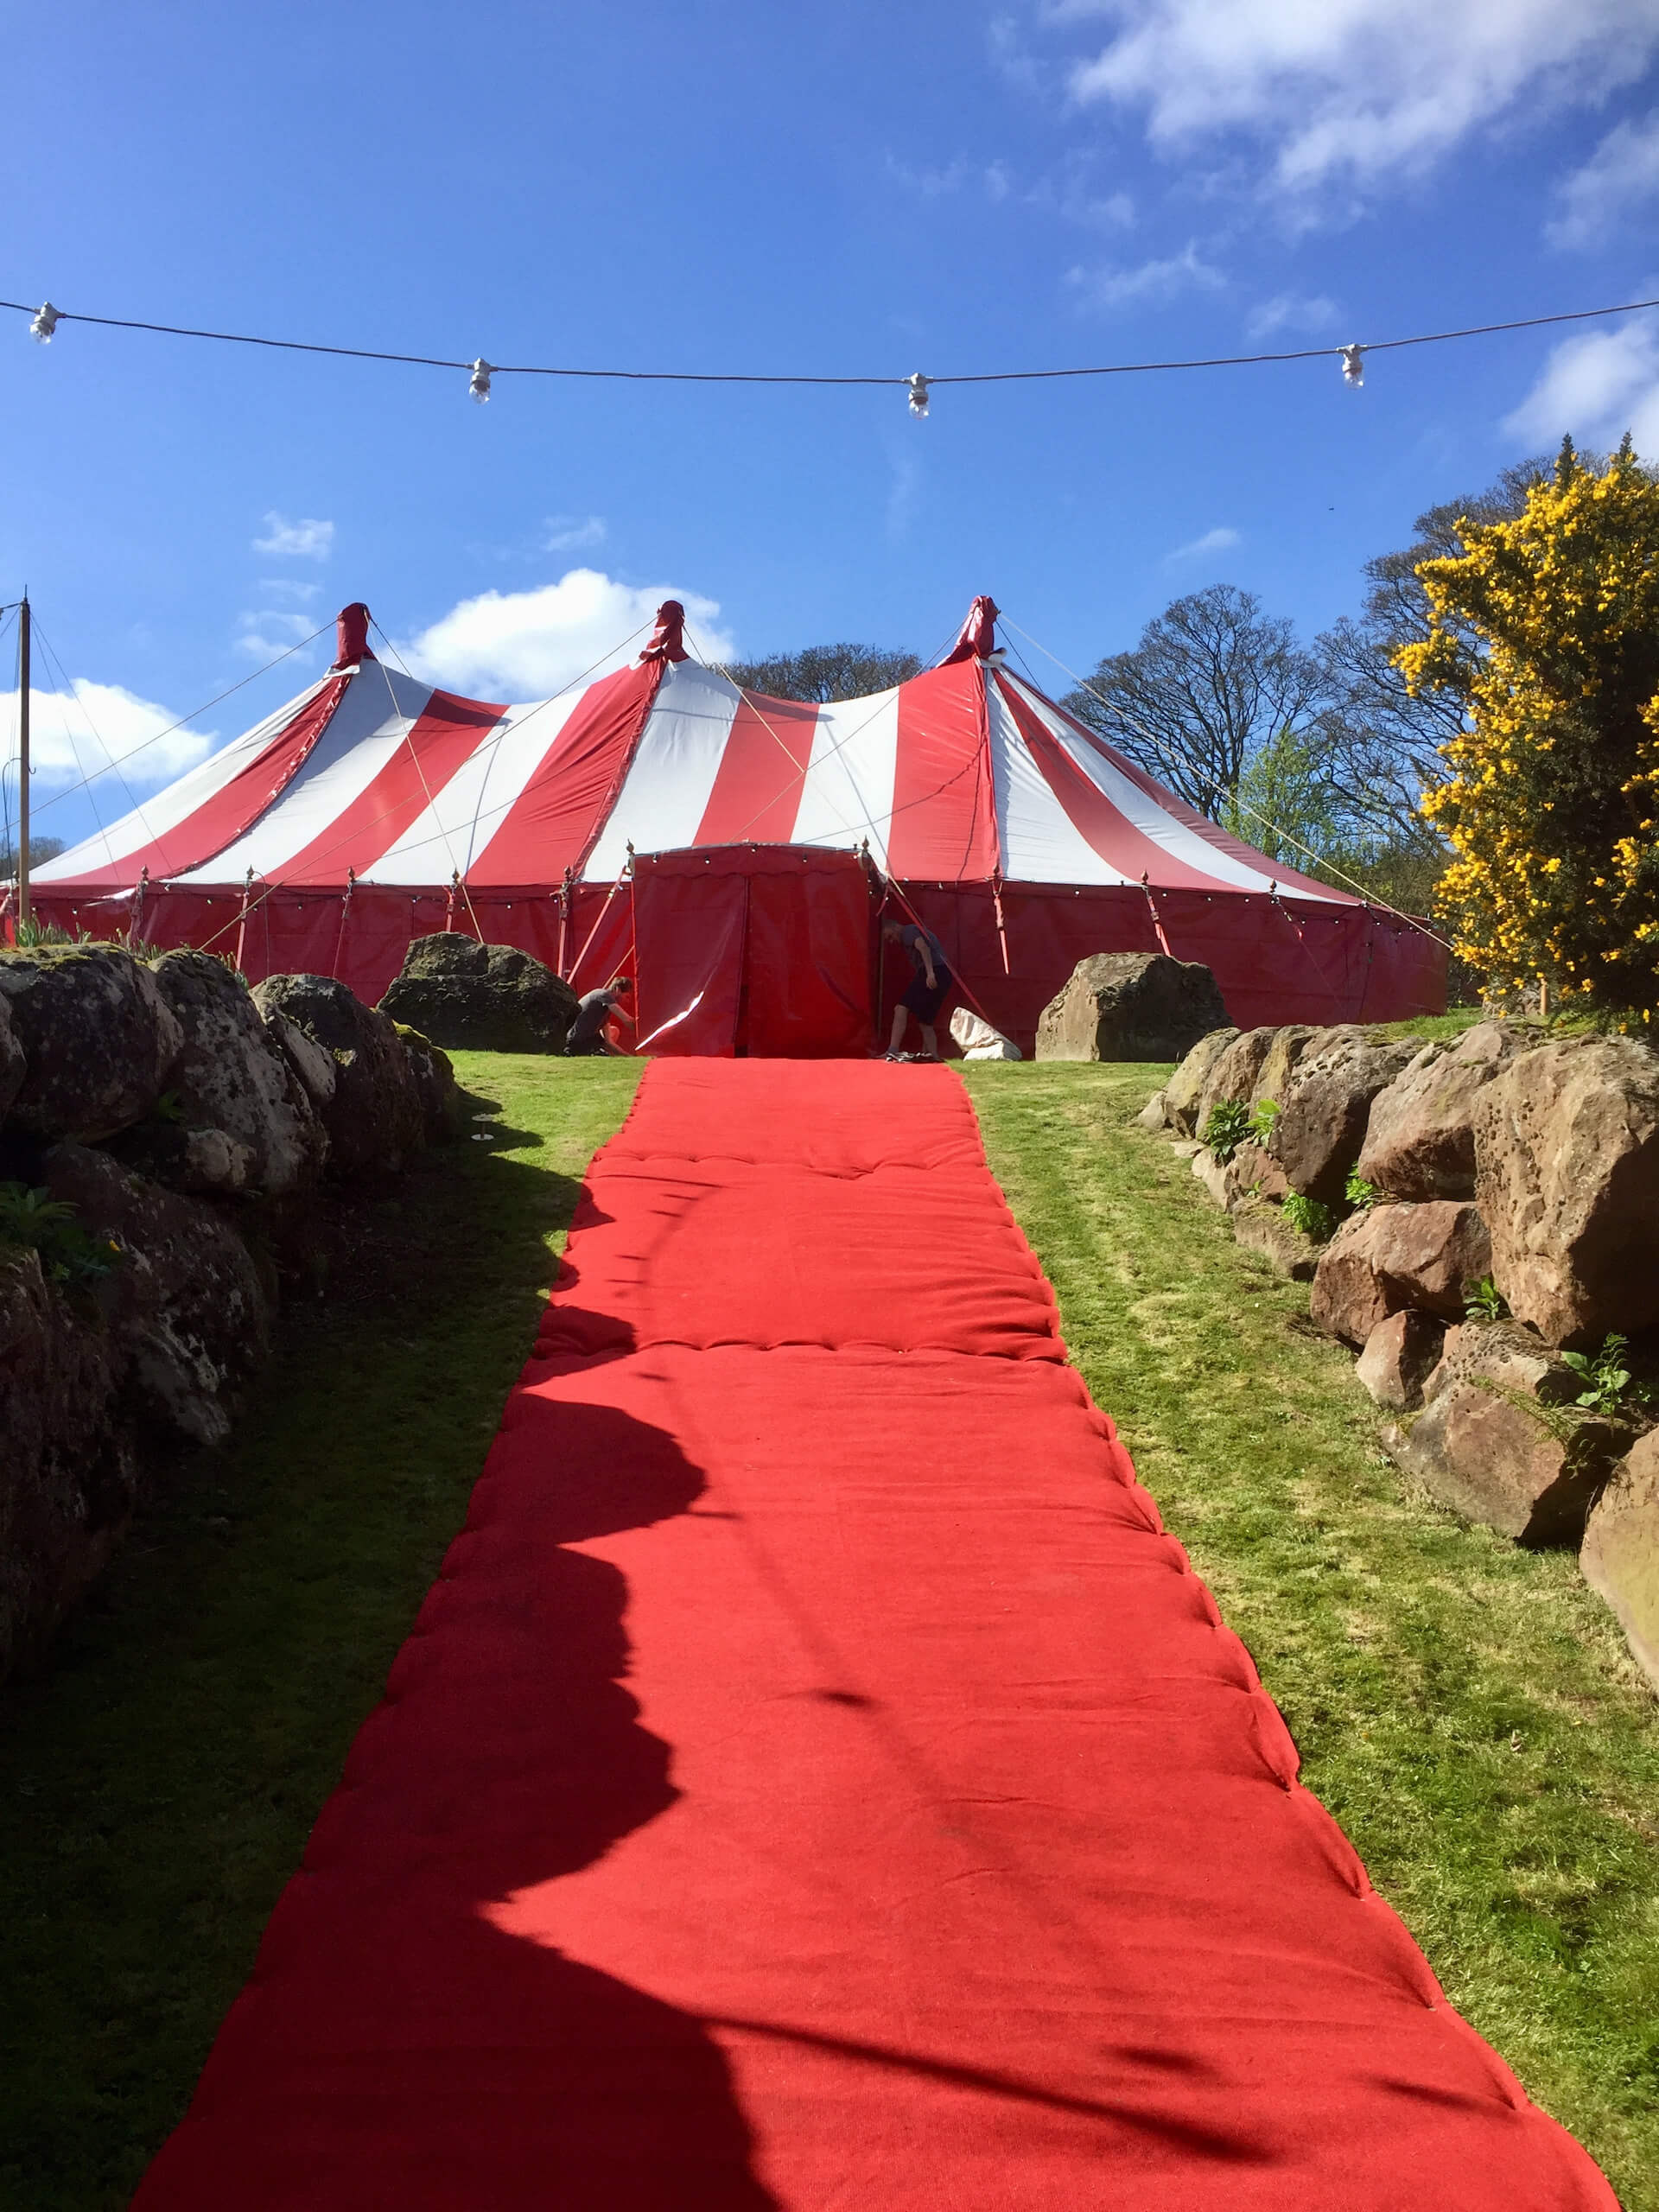 Red-carpet walkway entrance to wedding marquee in Cheshire